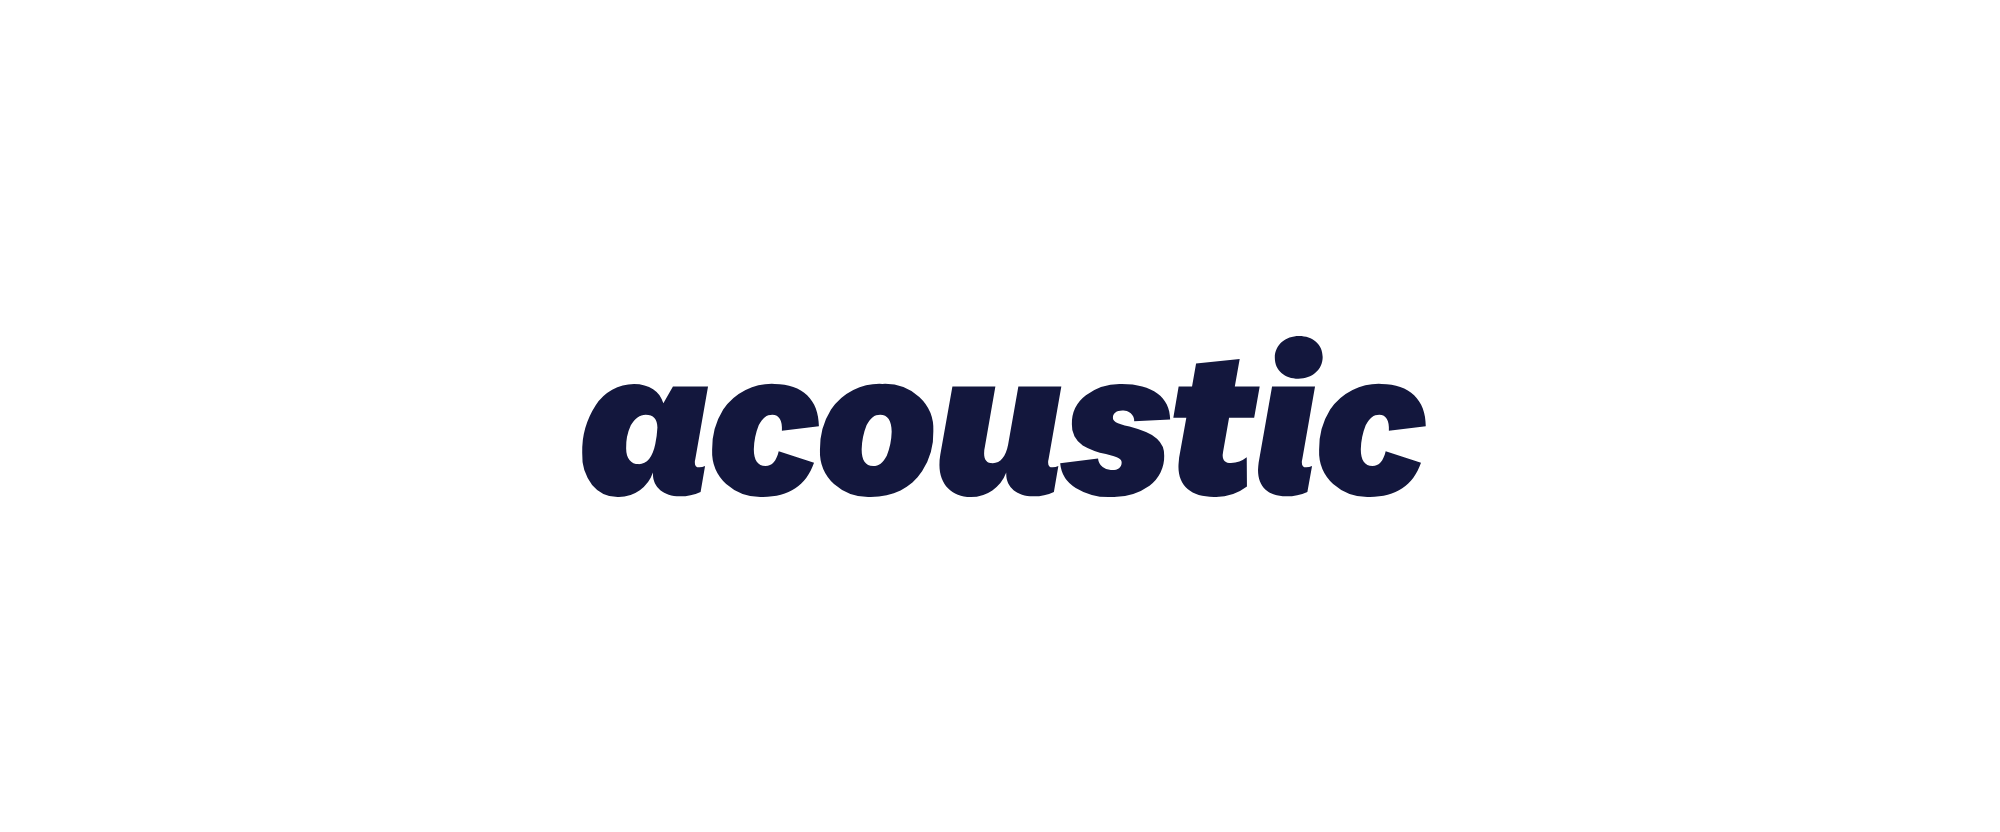 New Name and Logo for Acoustic